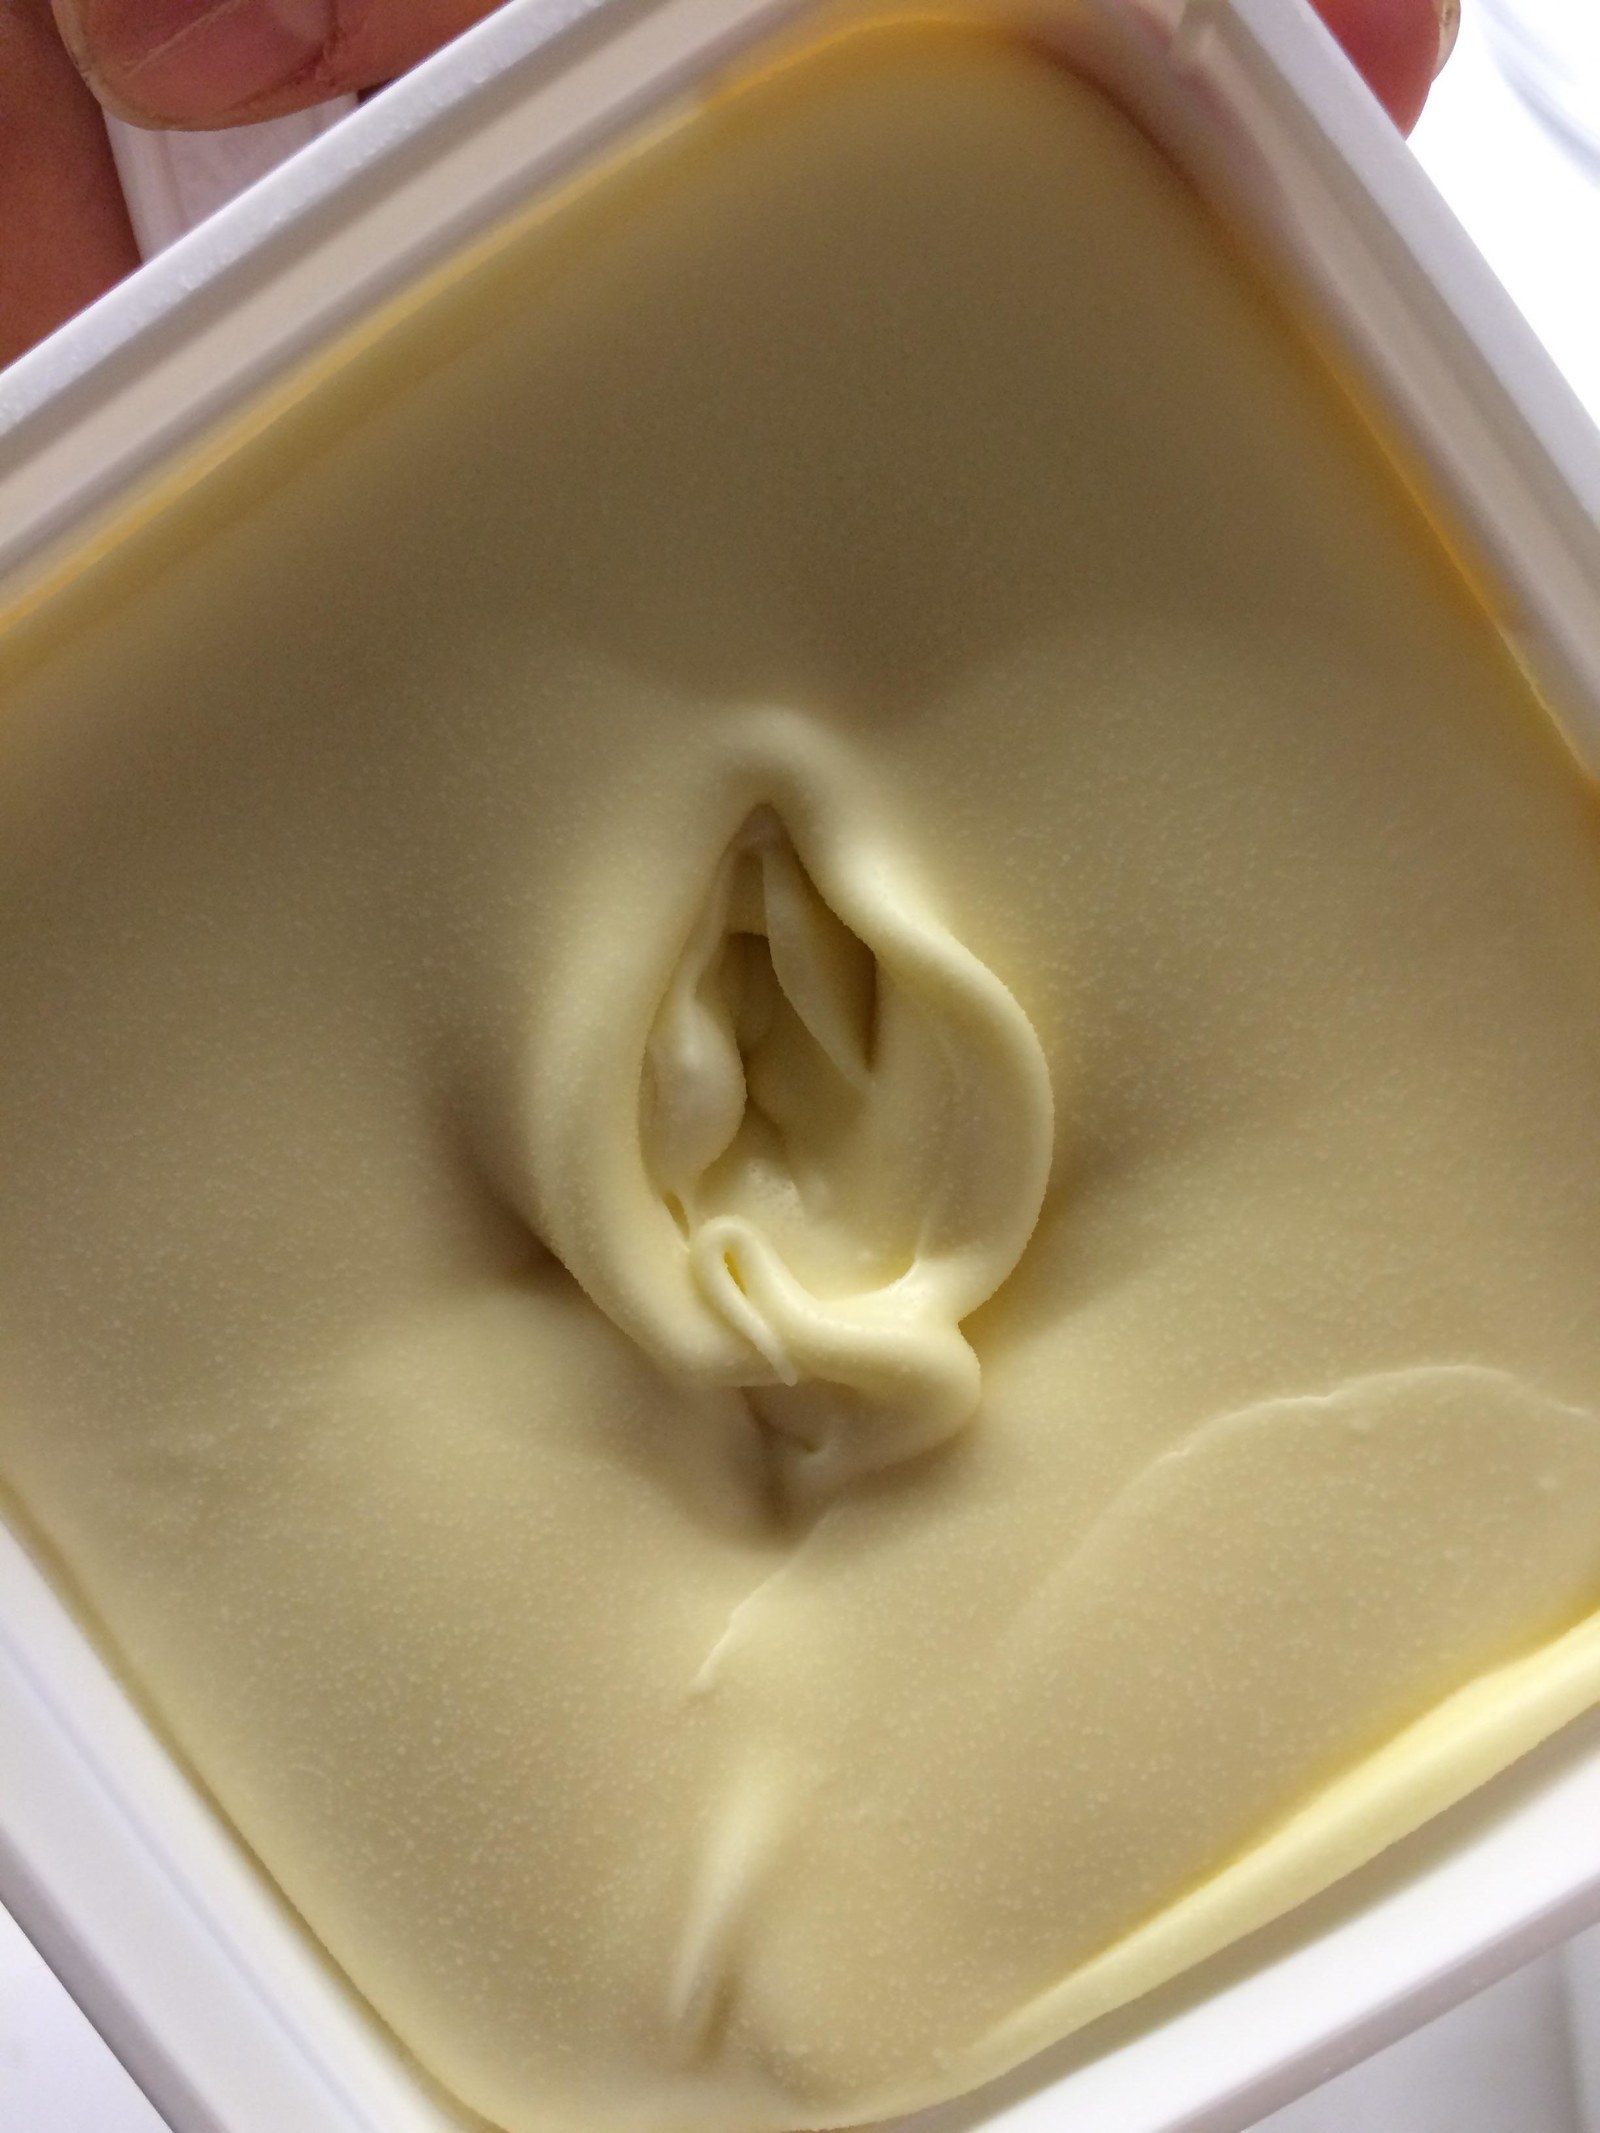 Butter with a small hole in the middle